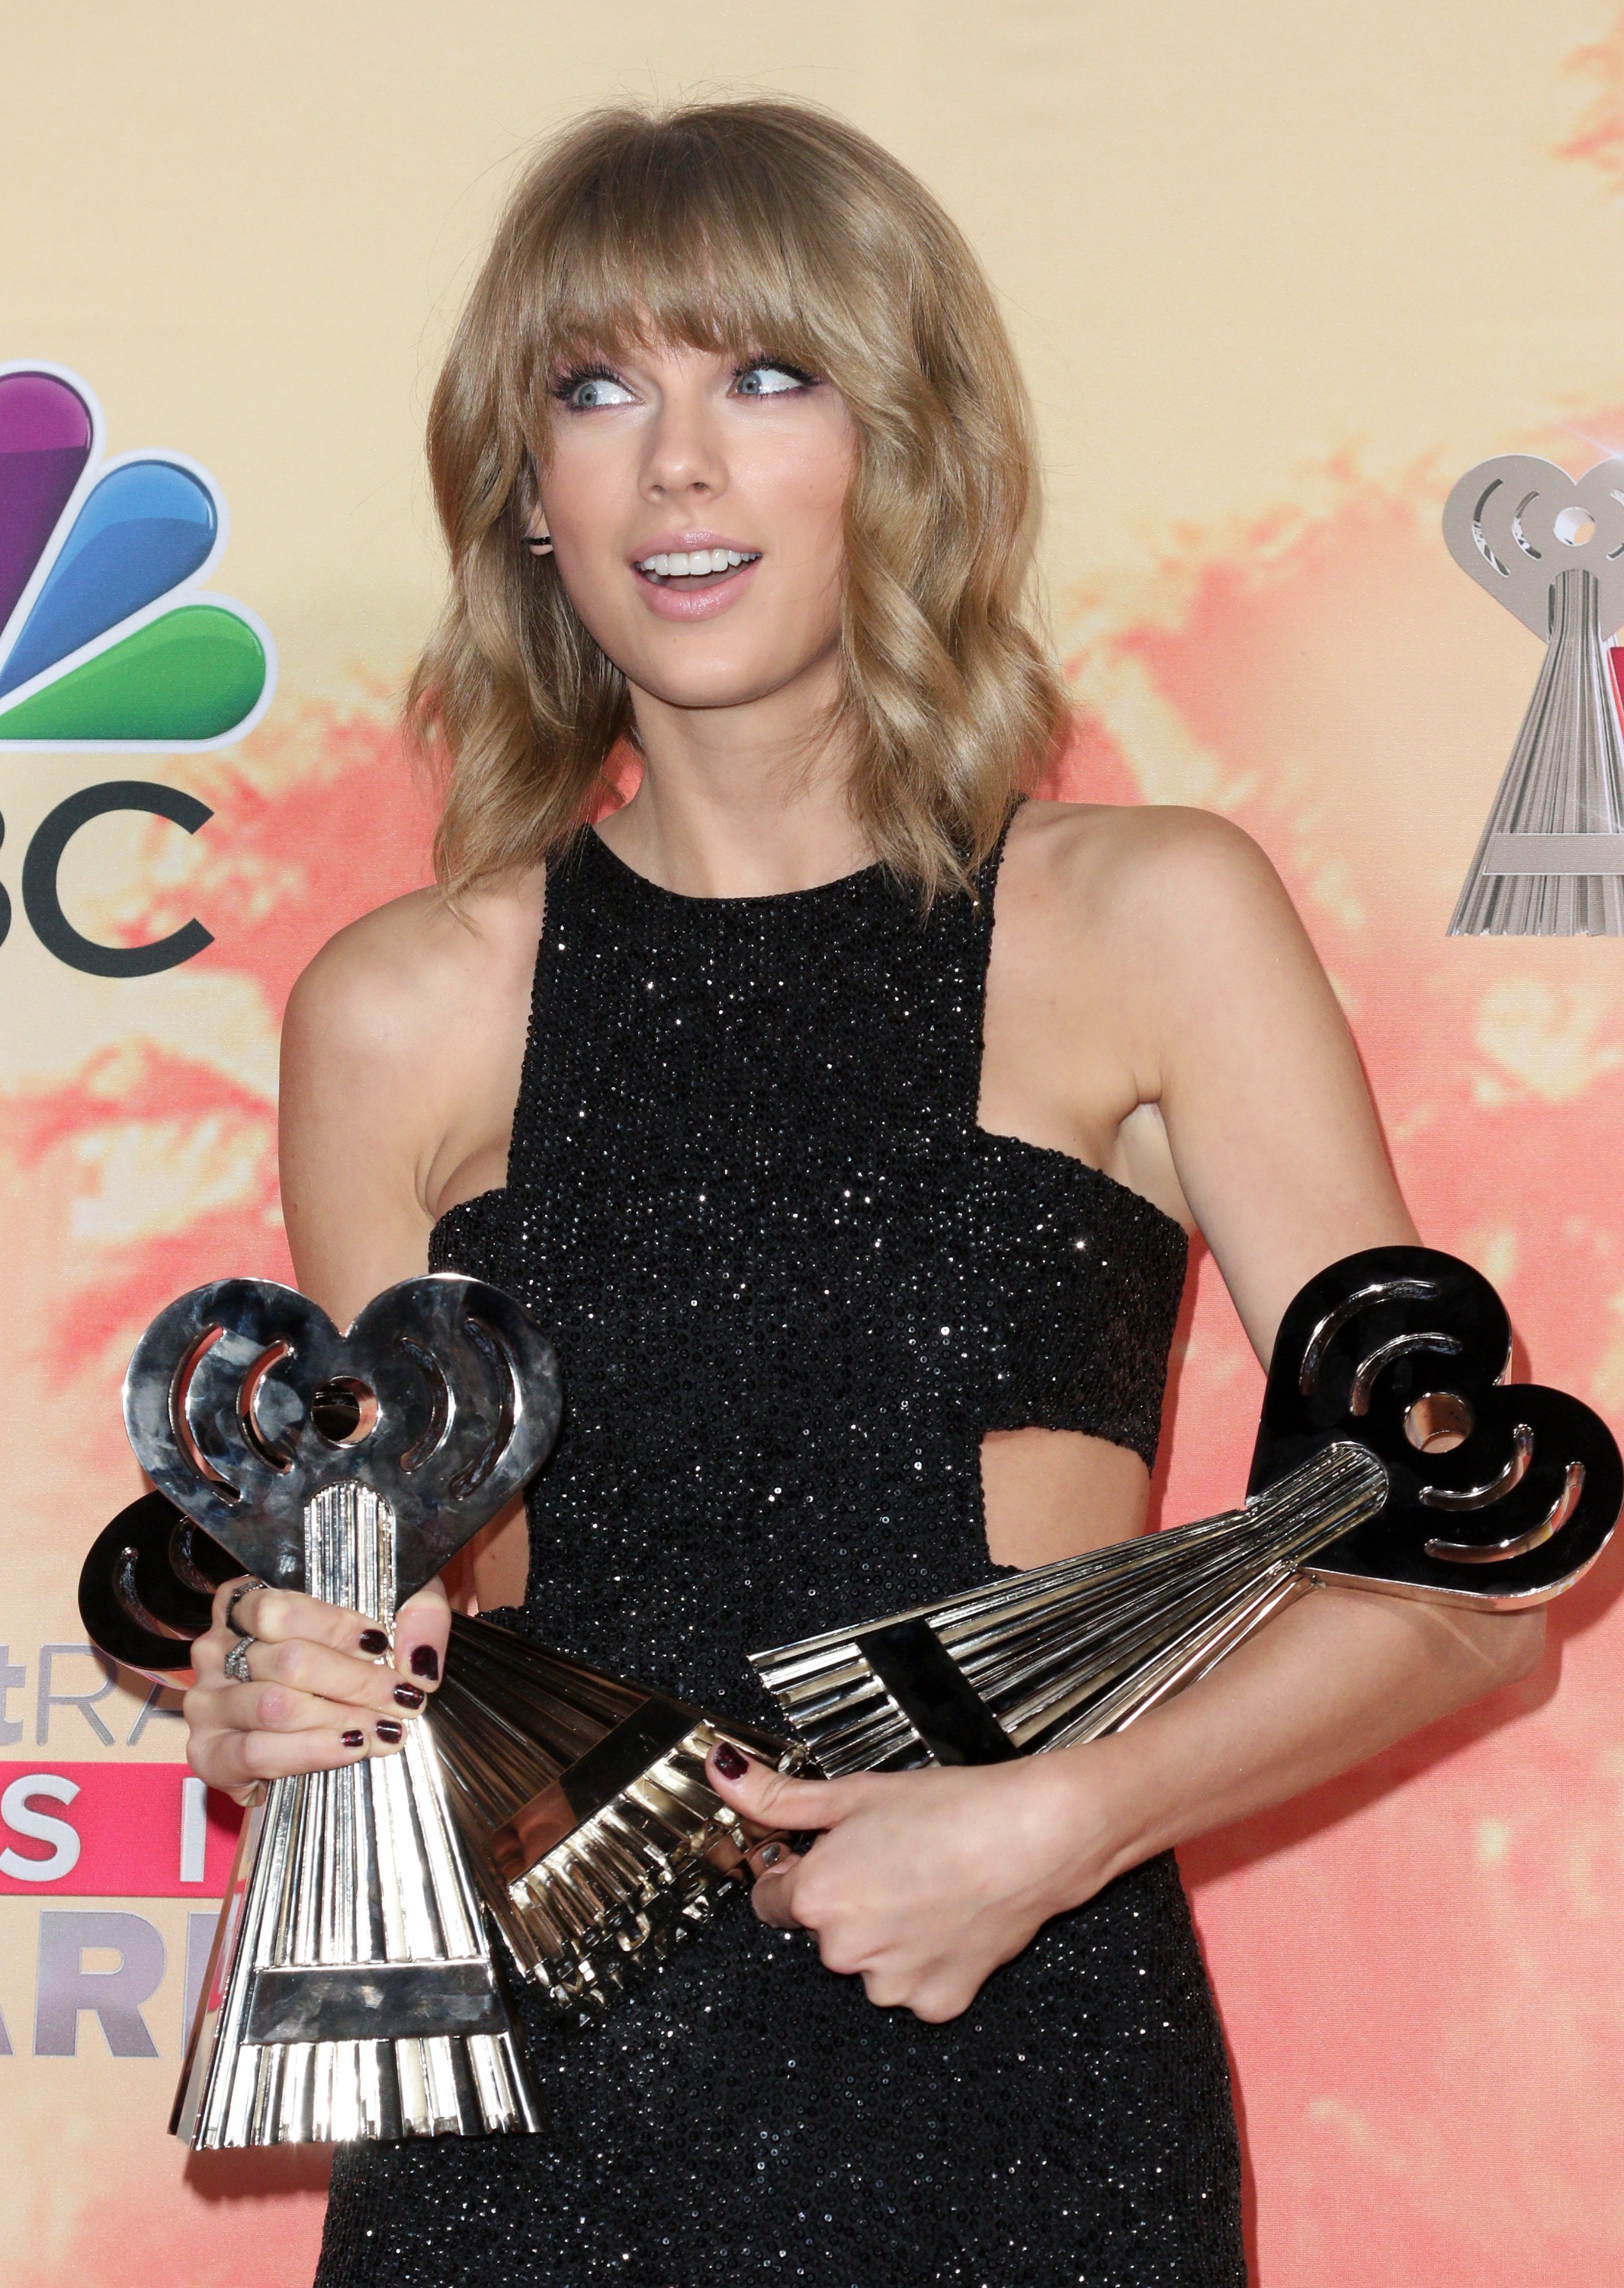 Taylor Swift wins artist of the year at iHeartRadio Awards